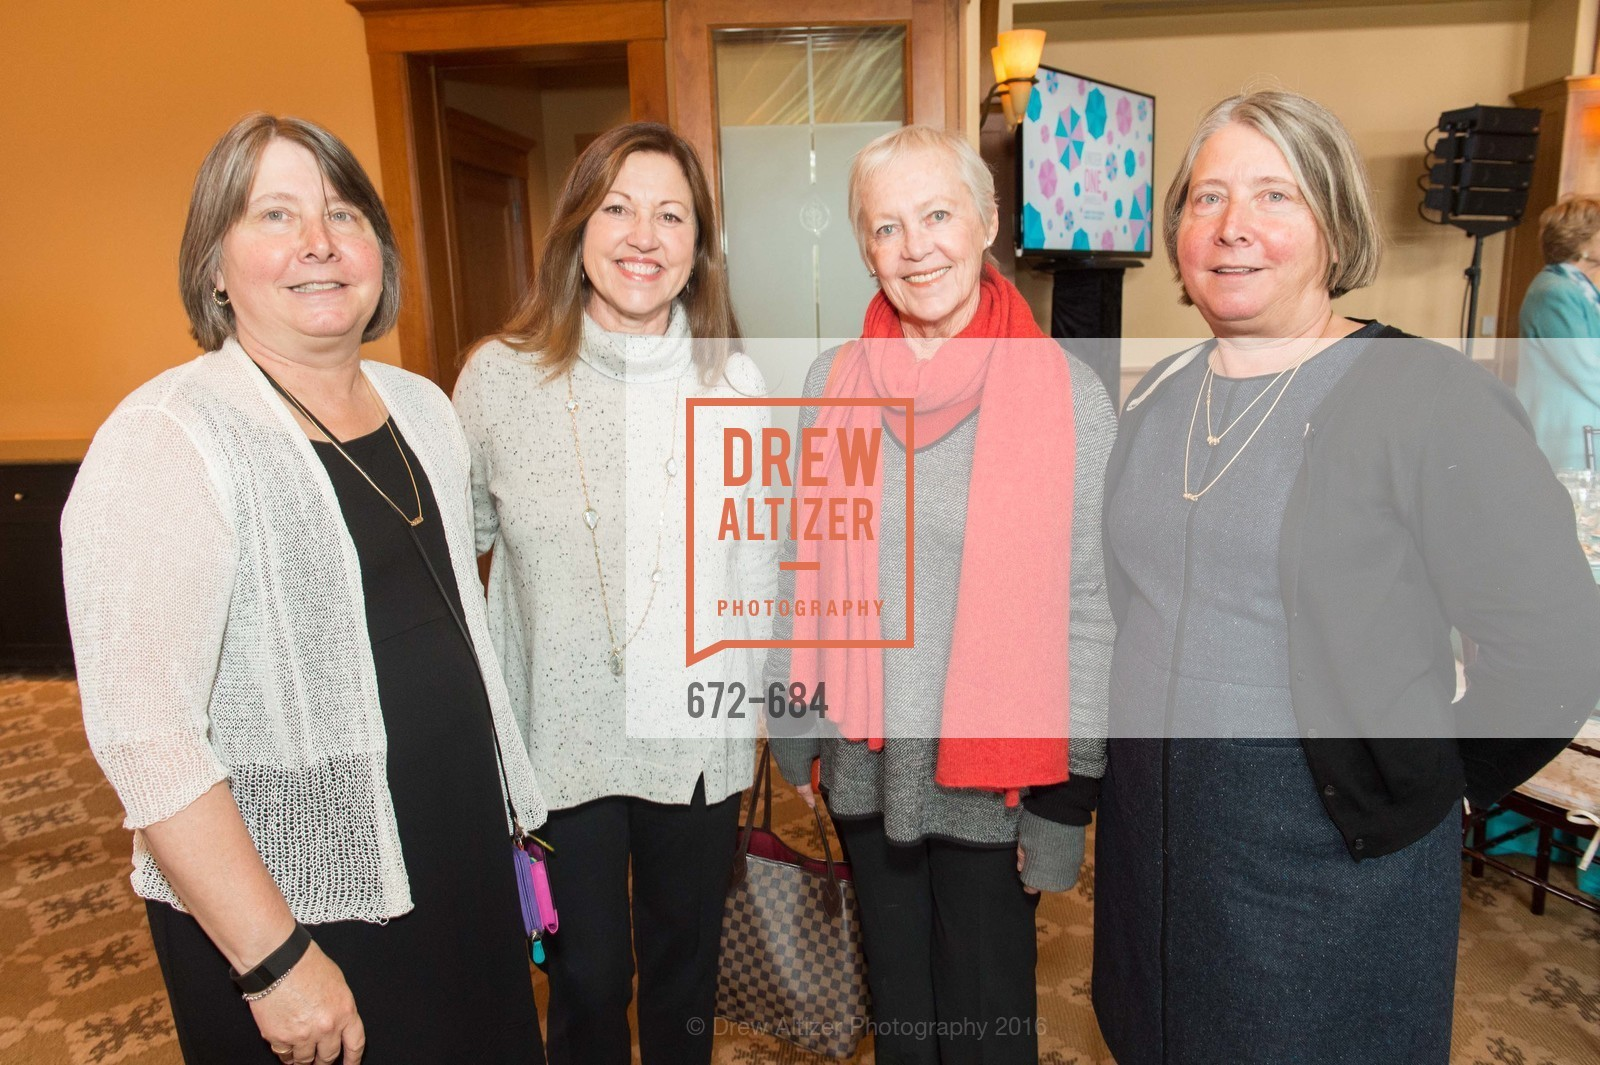 Kat Simmons, Kathleen McGinn, Marilyn Weinberg, Karen Wagner, Under One Umbrella, Sharon Heights Golf and Country Club, January 13th, 2016,Drew Altizer, Drew Altizer Photography, full-service event agency, private events, San Francisco photographer, photographer California